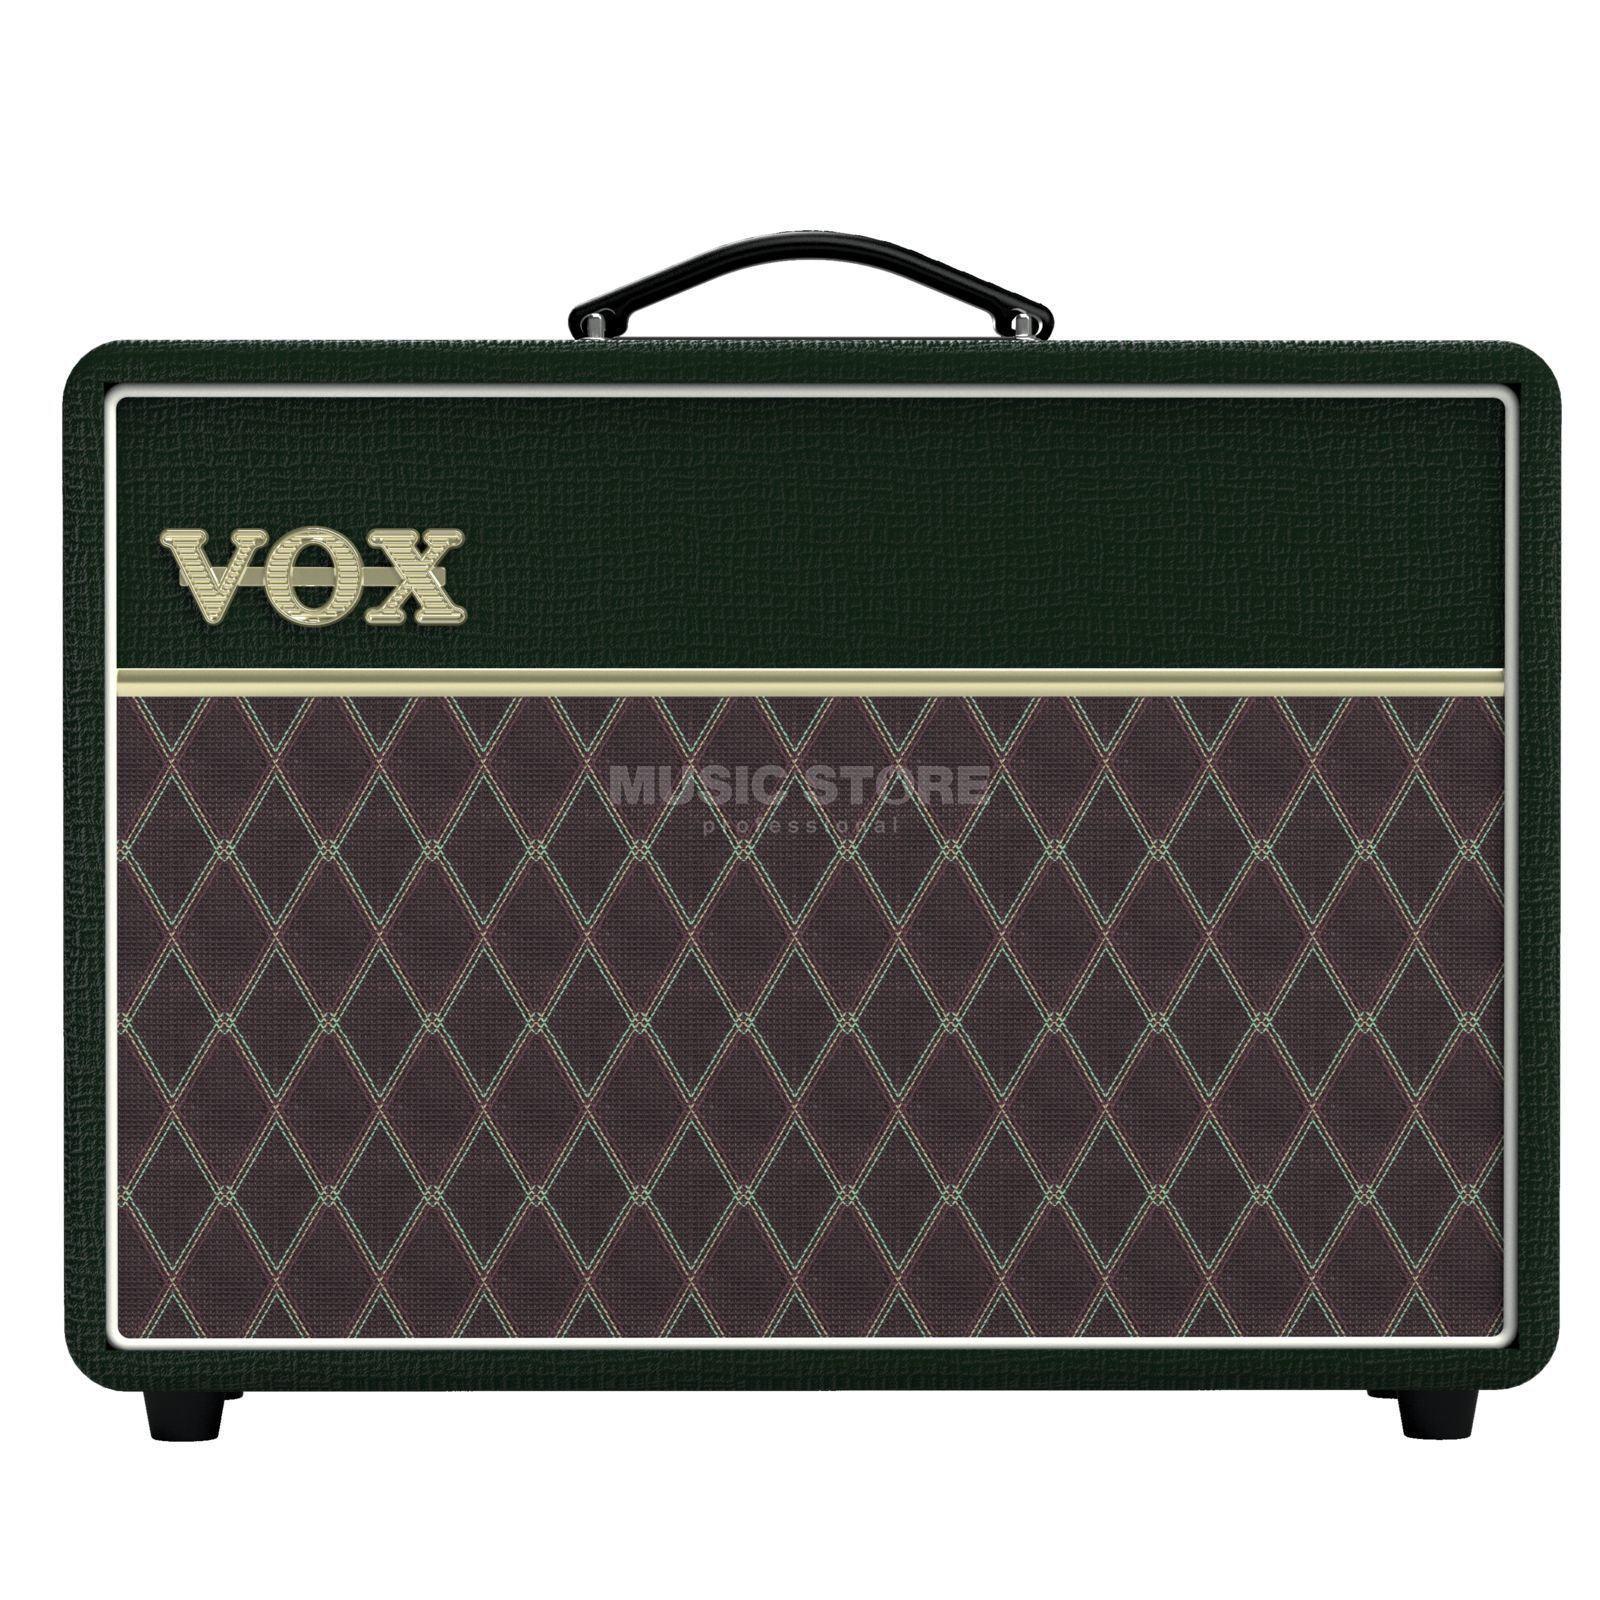 VOX AC10C1 Limited Edition British Racing Green Produktbild